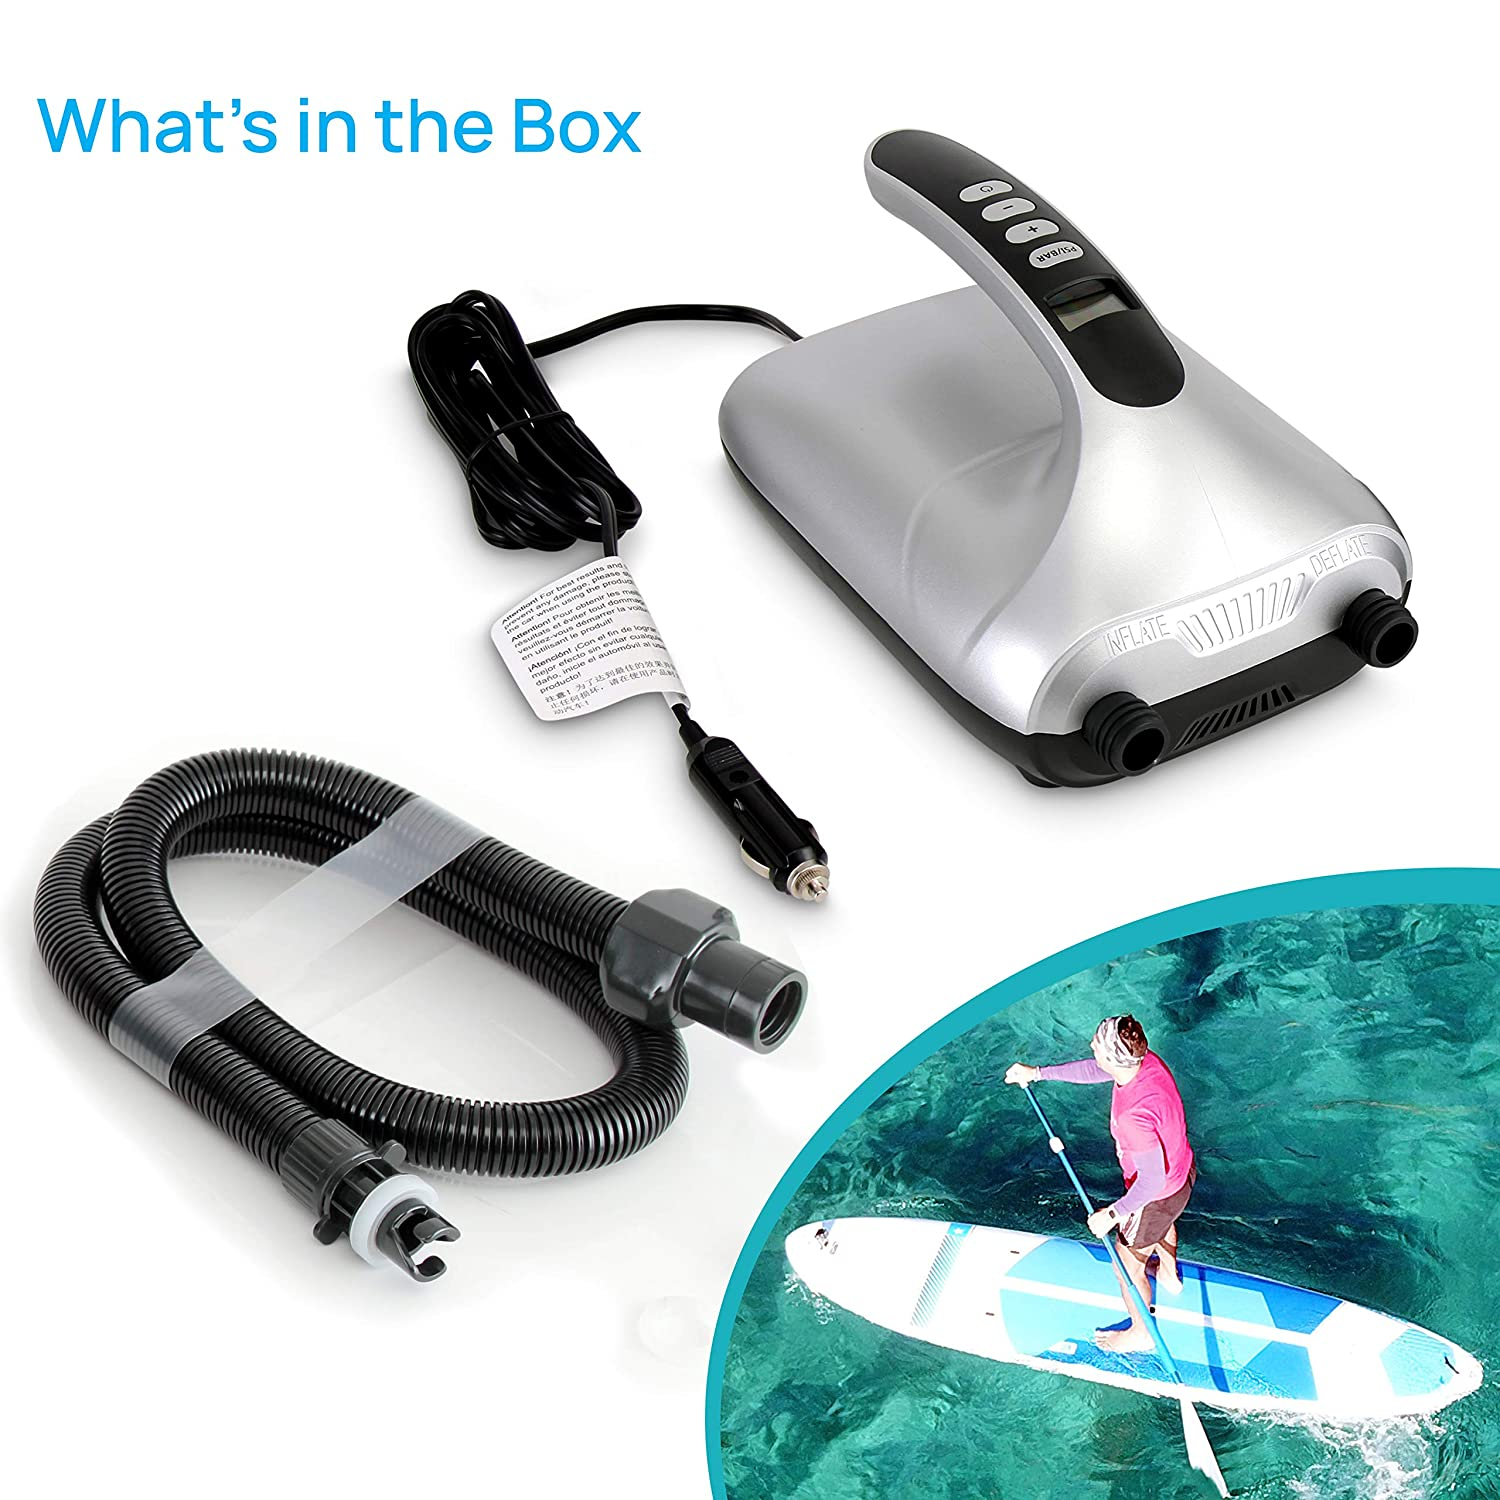 Digital Electric Air Pump Compressor For Inflatable SUP Stand Up Paddle Board // Boat 110W 12 Volt Quick Air Inflator // Deflator w// LCD Water Sports Inflatables SereneLife SLPUMP30 0-20 PSI